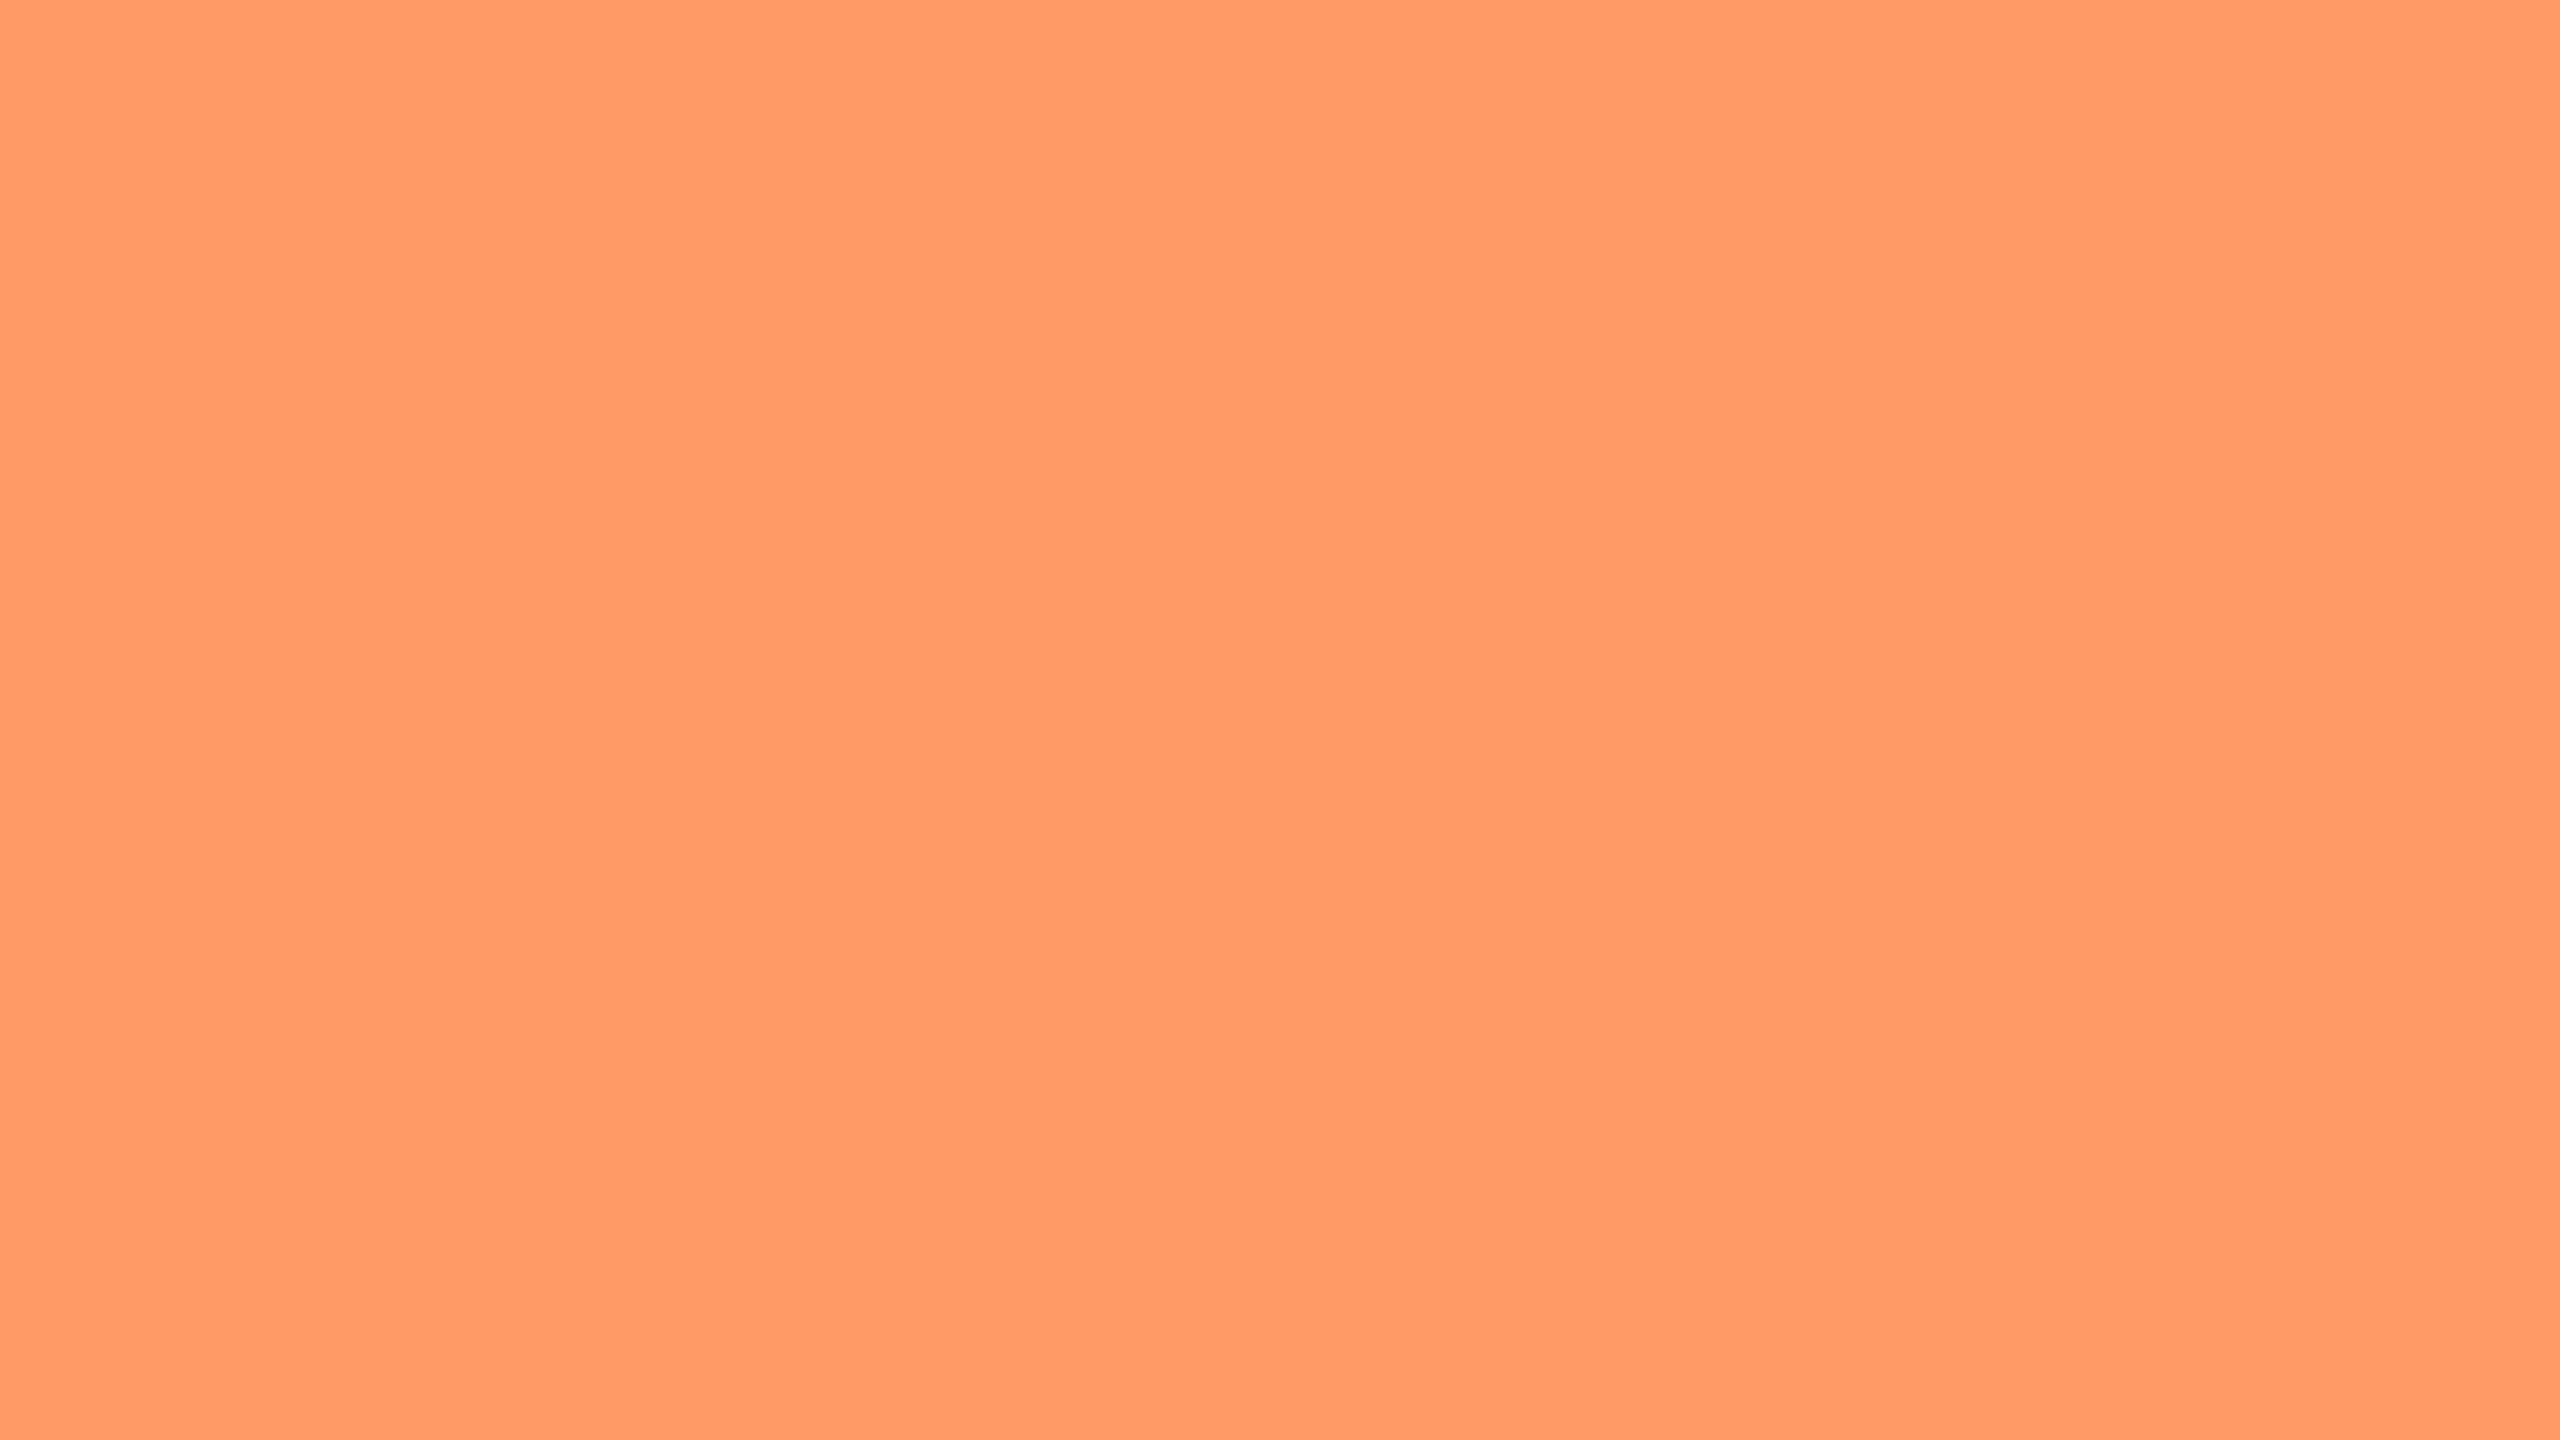 2560x1440 Atomic Tangerine Solid Color Background